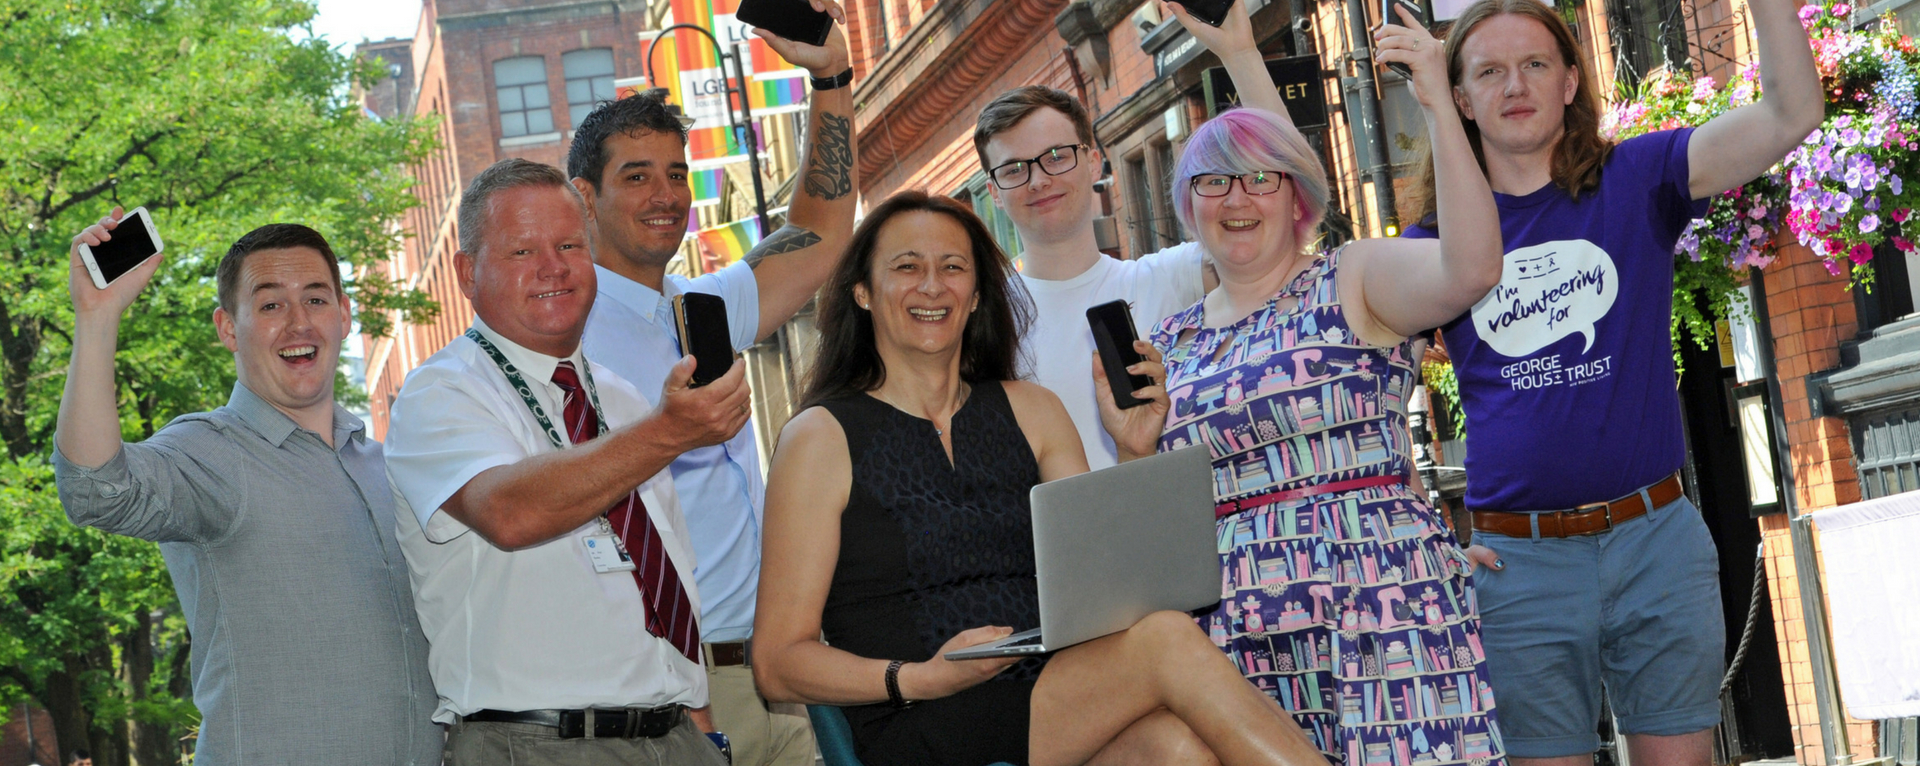 Tech PR agency in Manchester launches new campaign on Canal Street in famous Gay Village